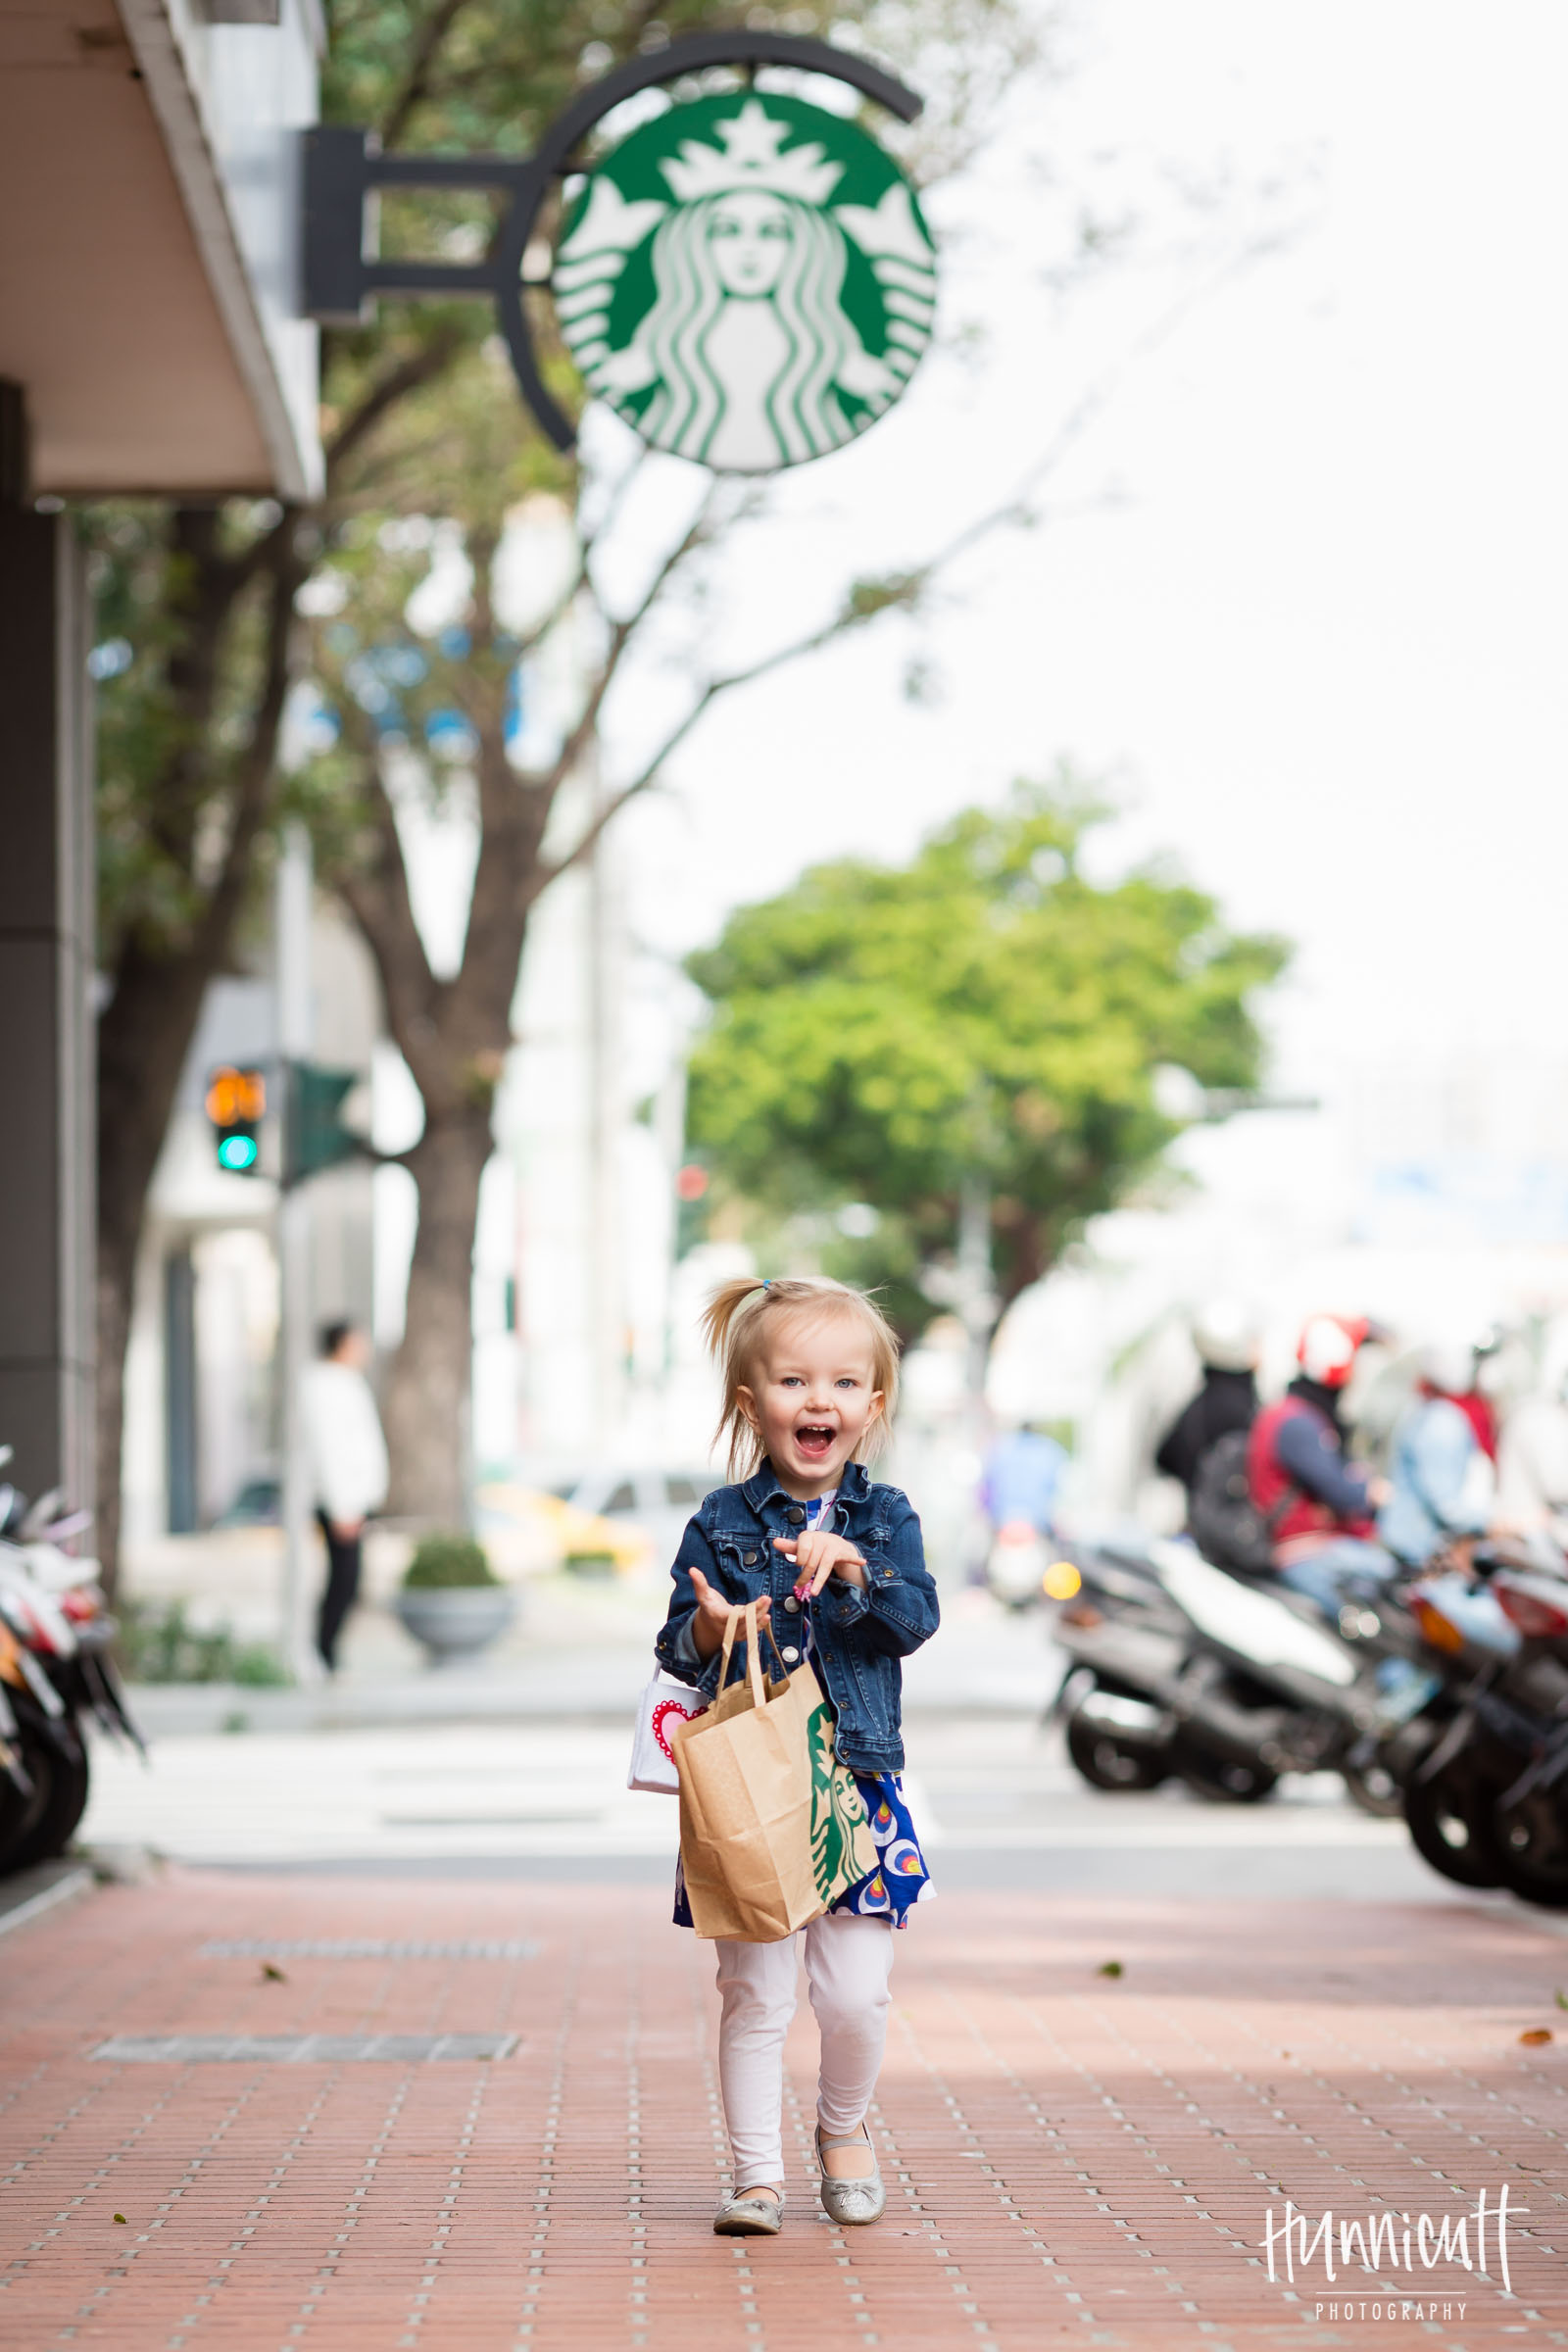 smiling girl carrying a Starbucks sack by Rebecca Hunnicutt Farren